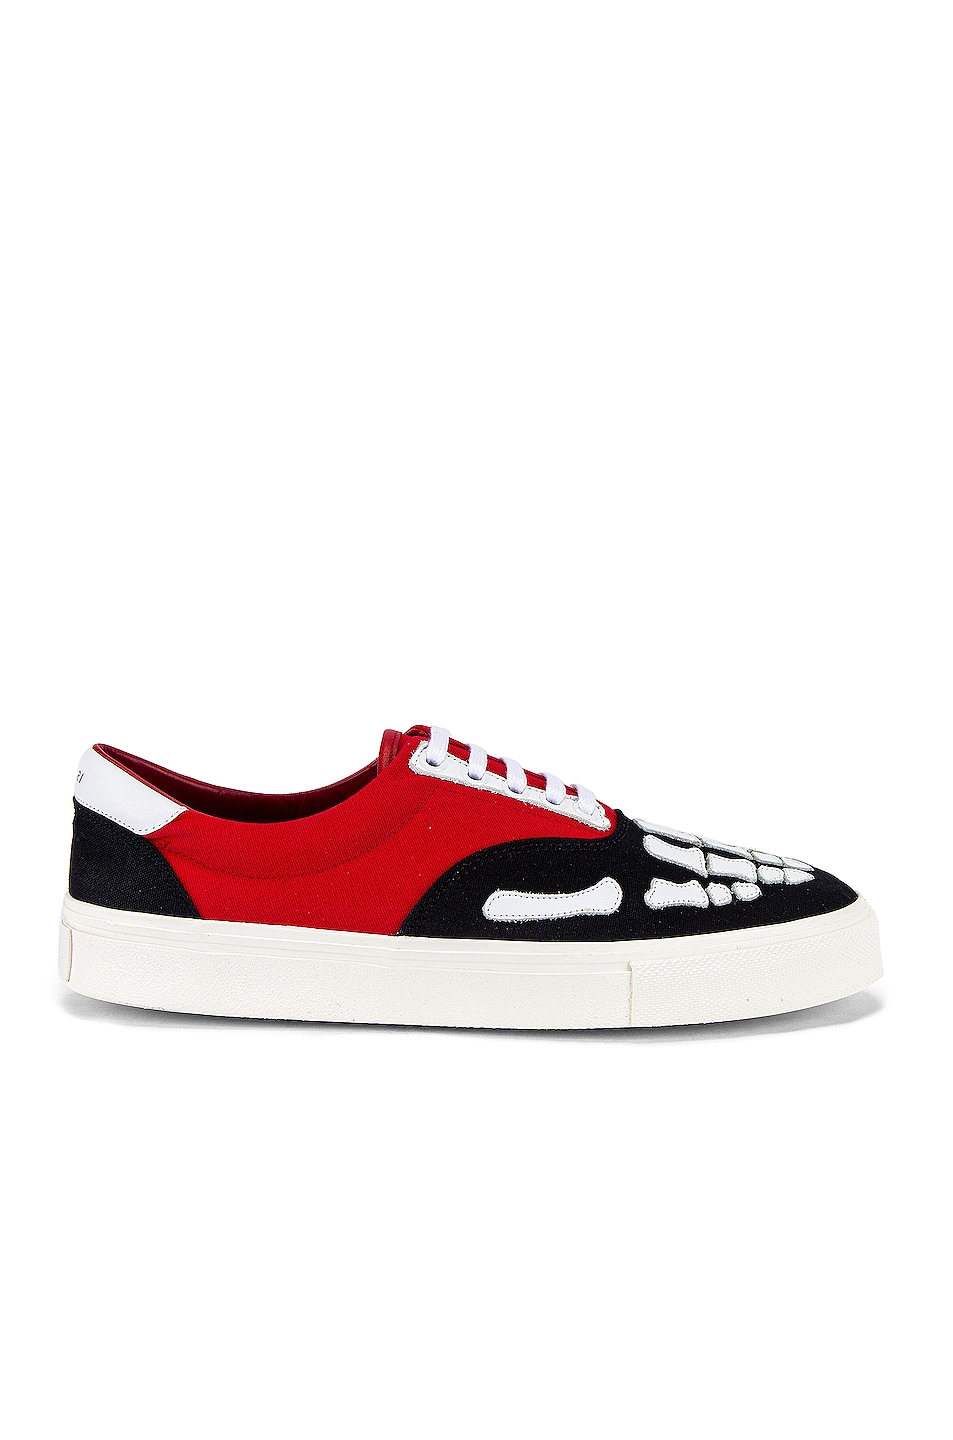 Image 2 of Amiri Skel Toe Lace Up Sneaker in Black & Red & White